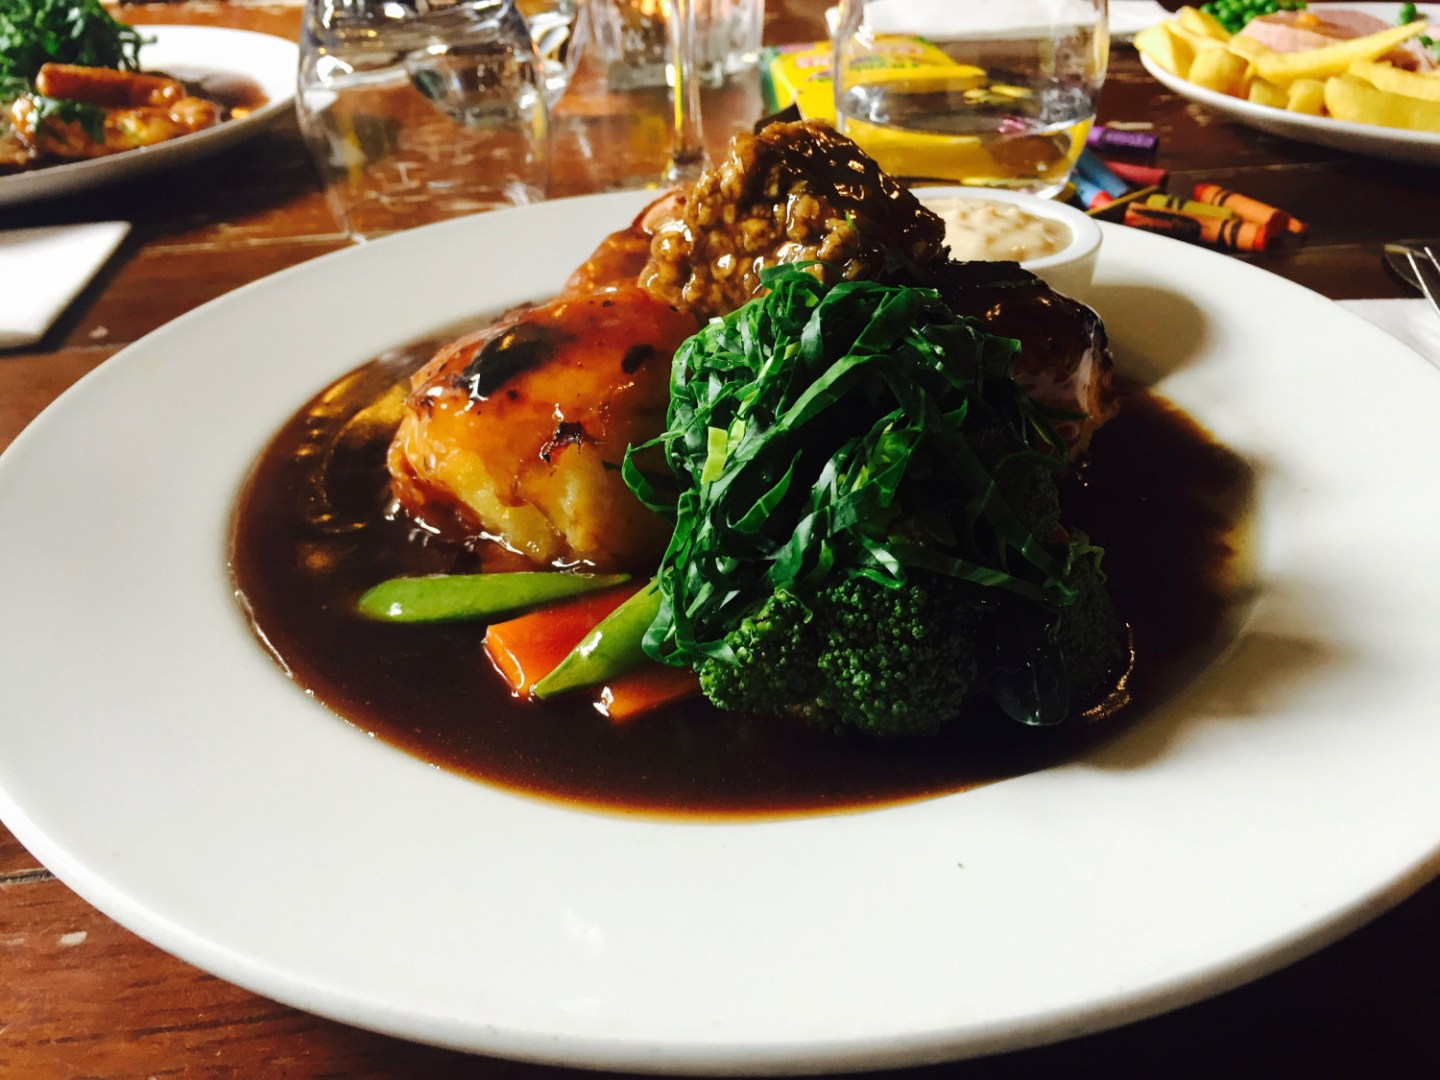 The Bush Inn roast beef